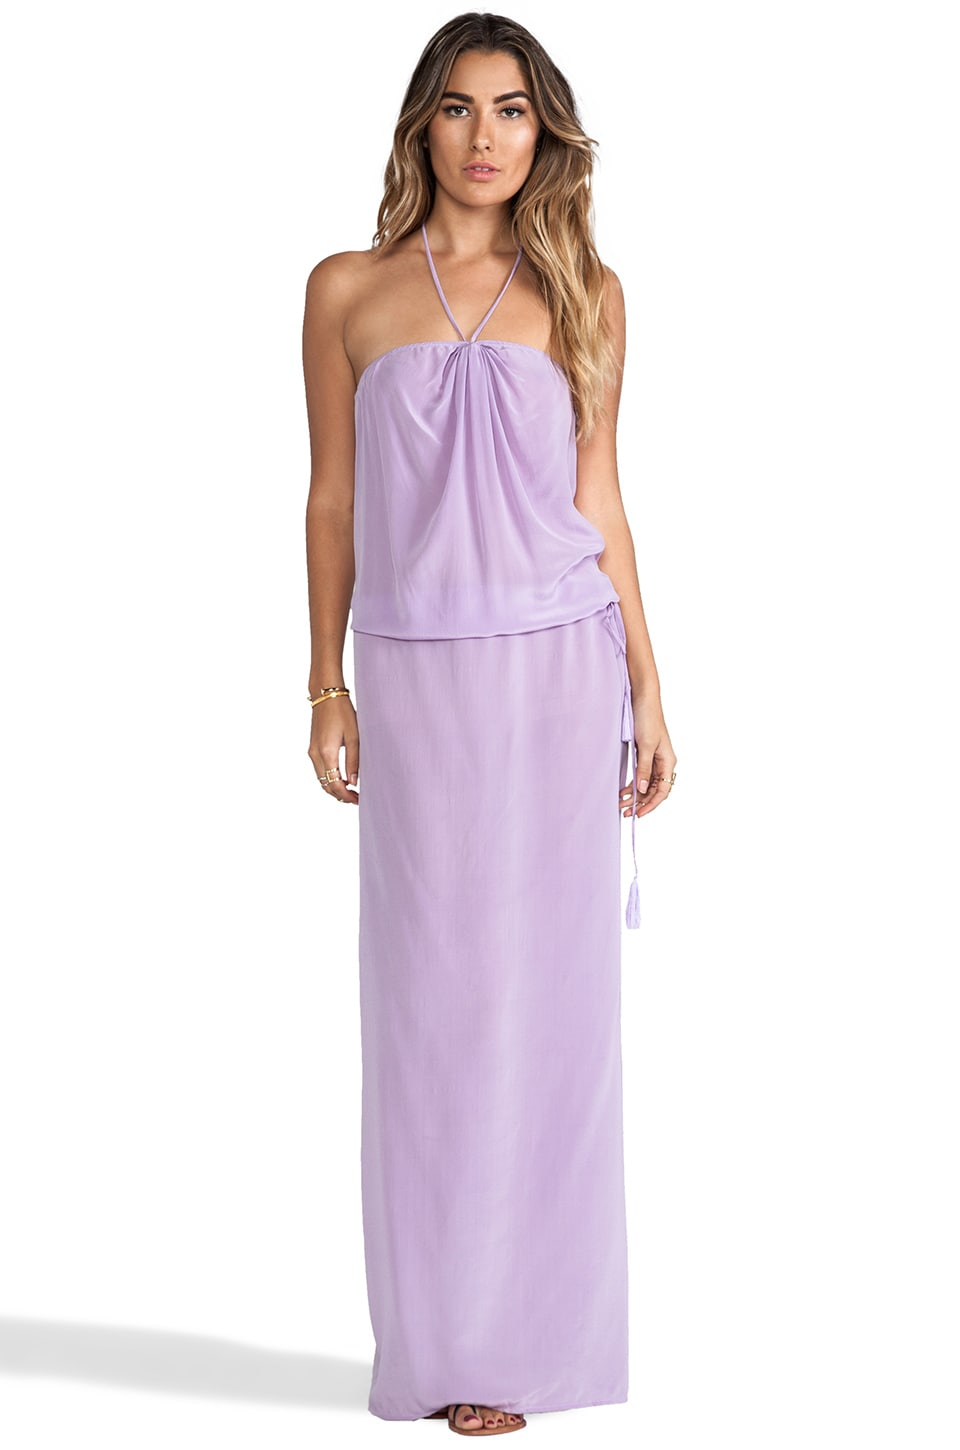 Indah Roo Silk Crepe Long Strapless Maxi Dress With Adjustable Waist and Tie Top in Lavender